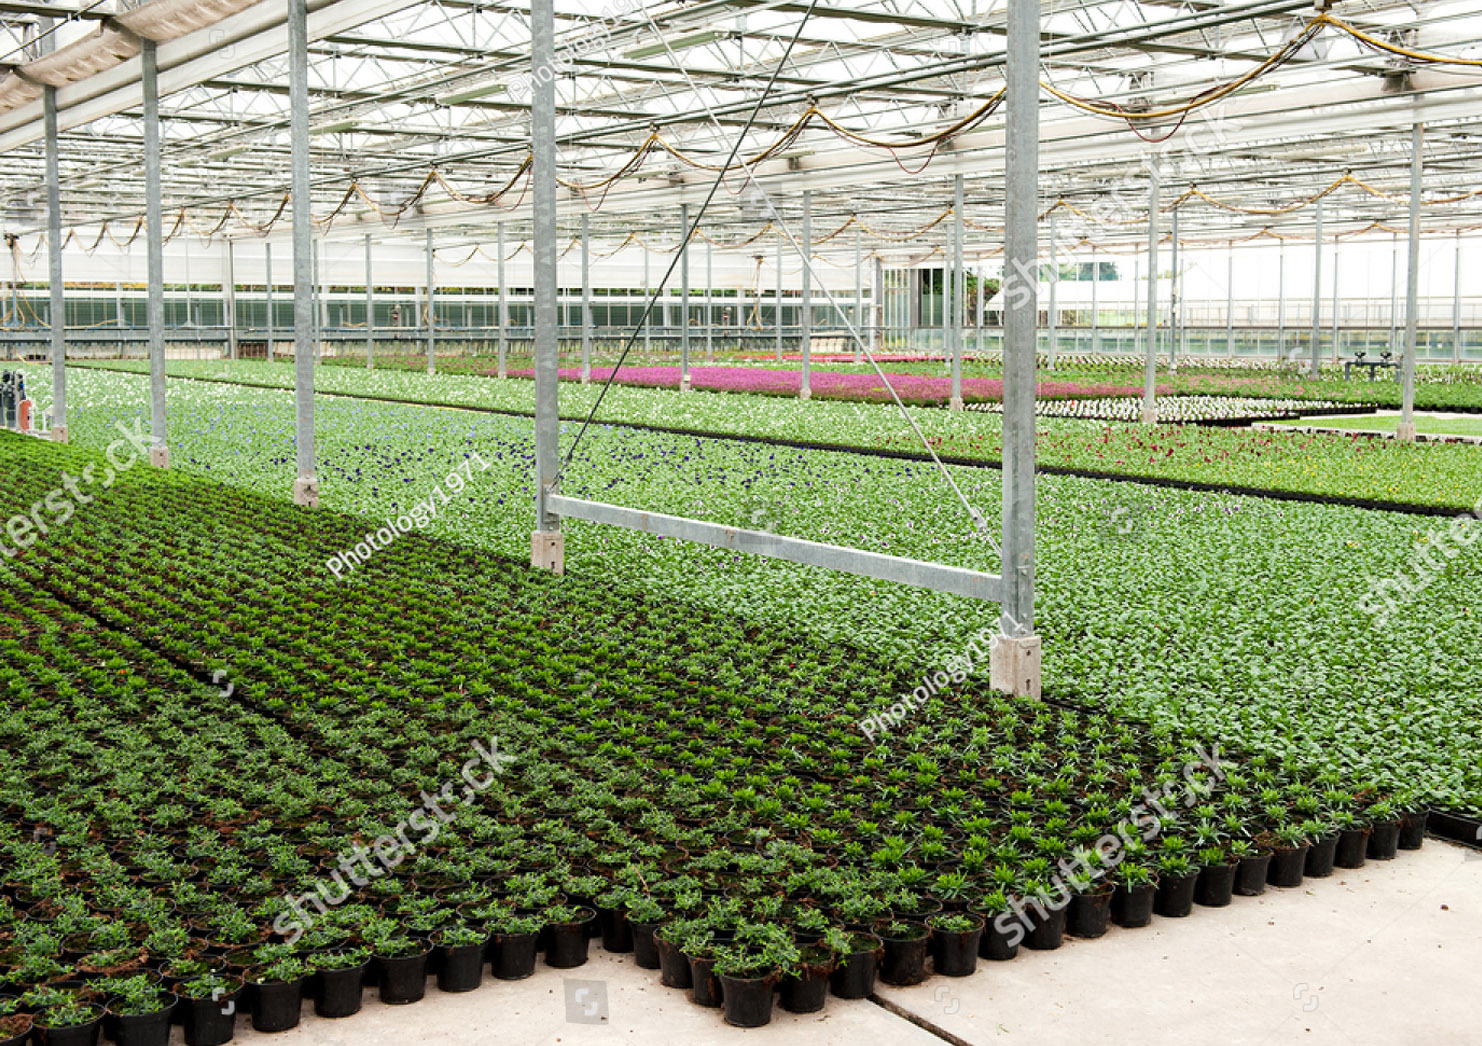 stock-photo-indoor-flower-cultivation-method-green-floor-of-planting-stock-greenhouse-covered-with-flower-pots-555179206_klein